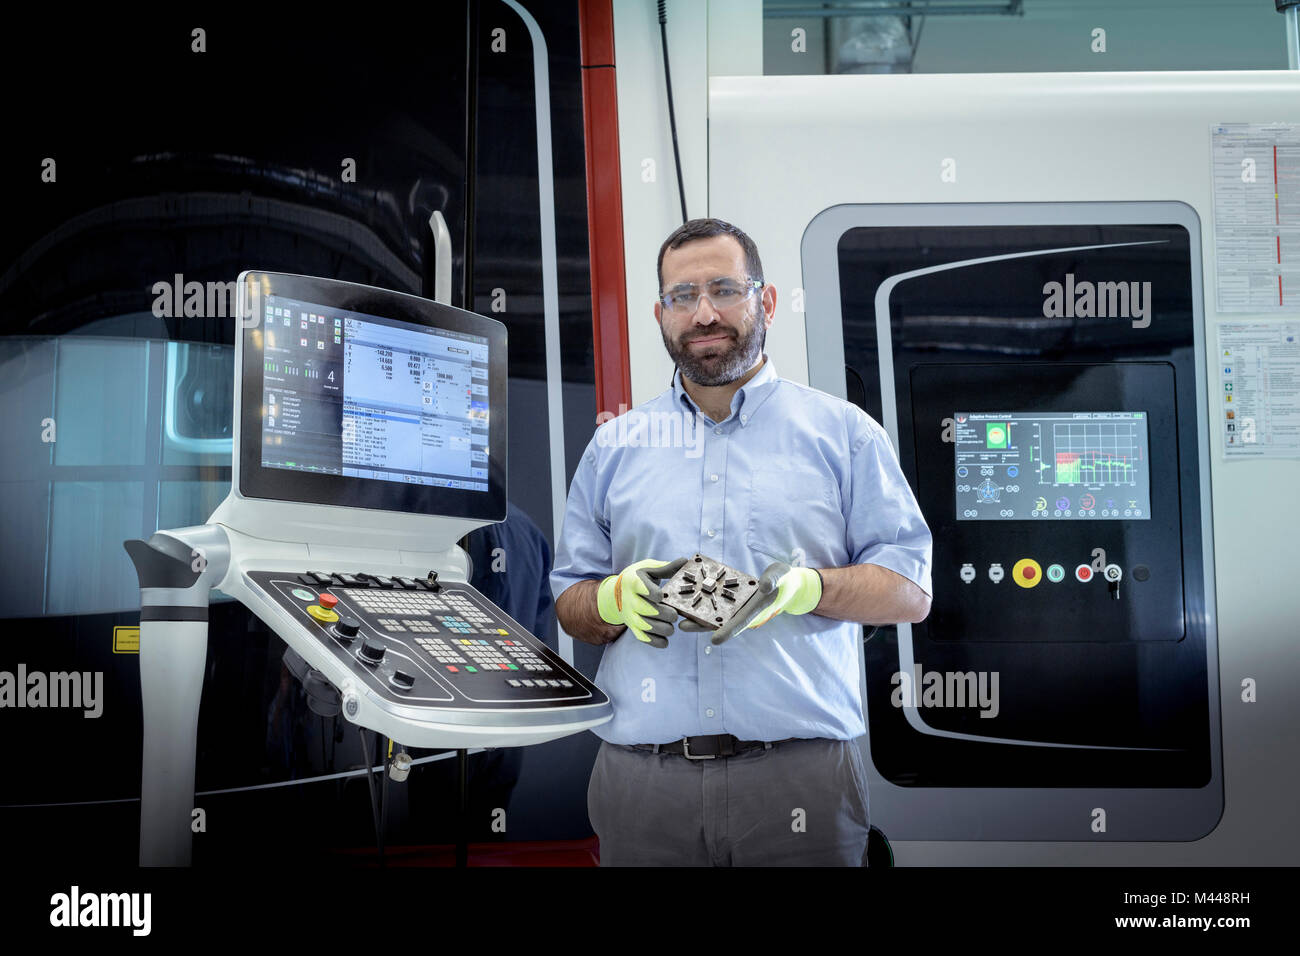 Portrait of operator with stainless steel 3D printer in robotics research facility - Stock Image